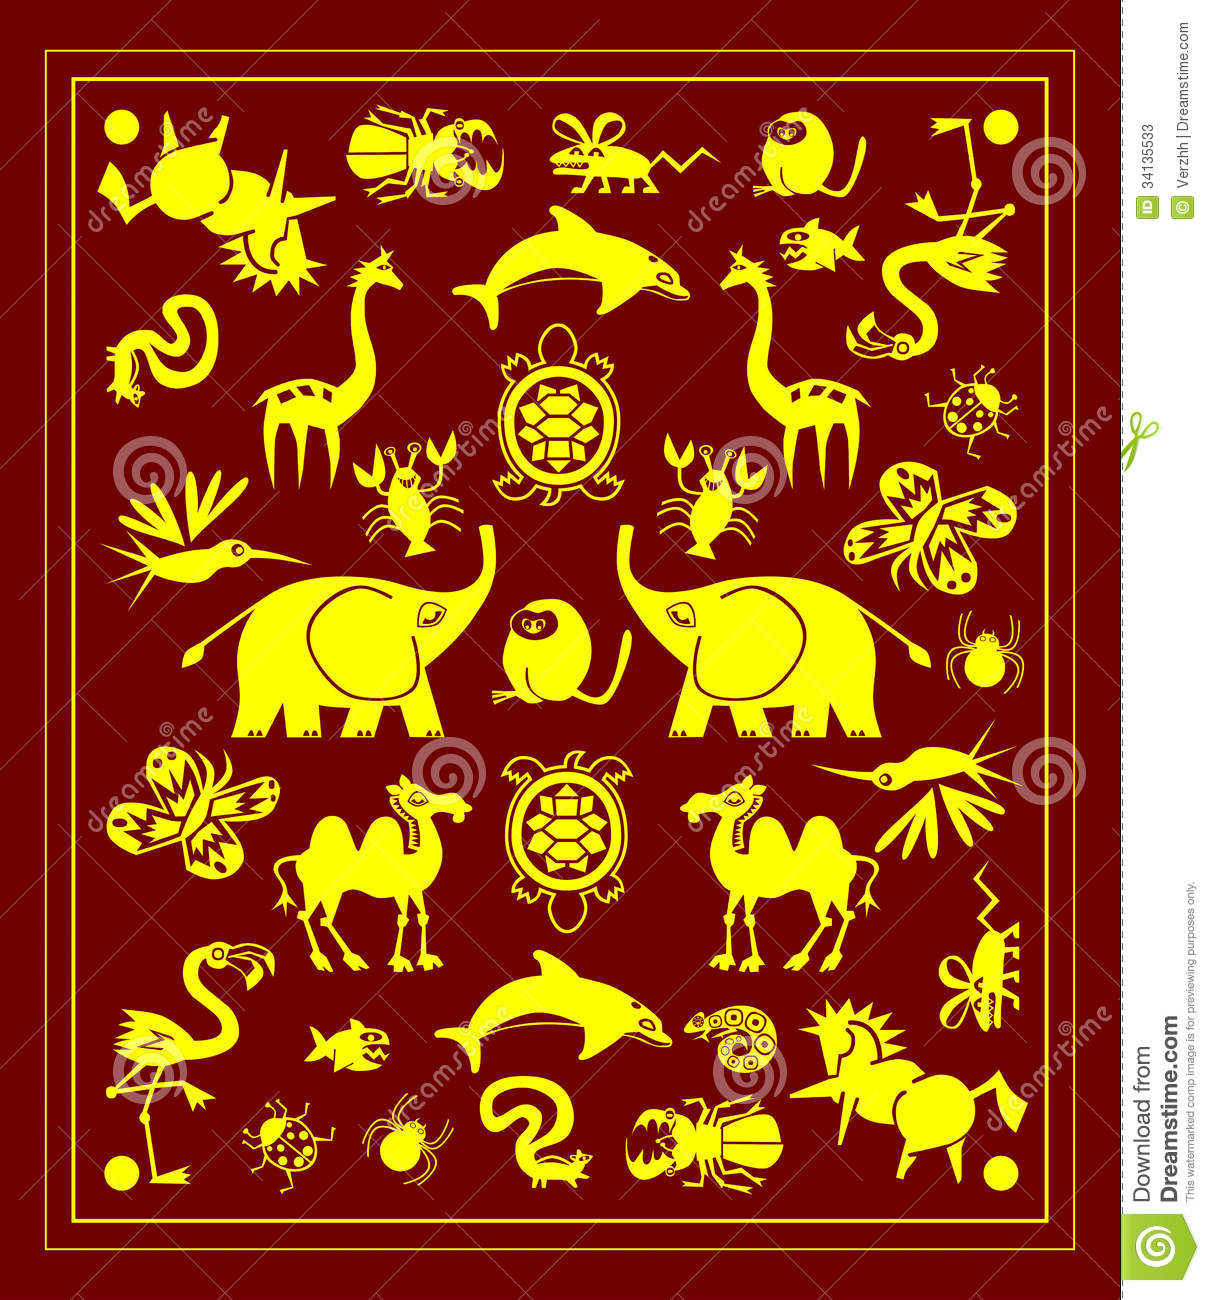 Rug with animals